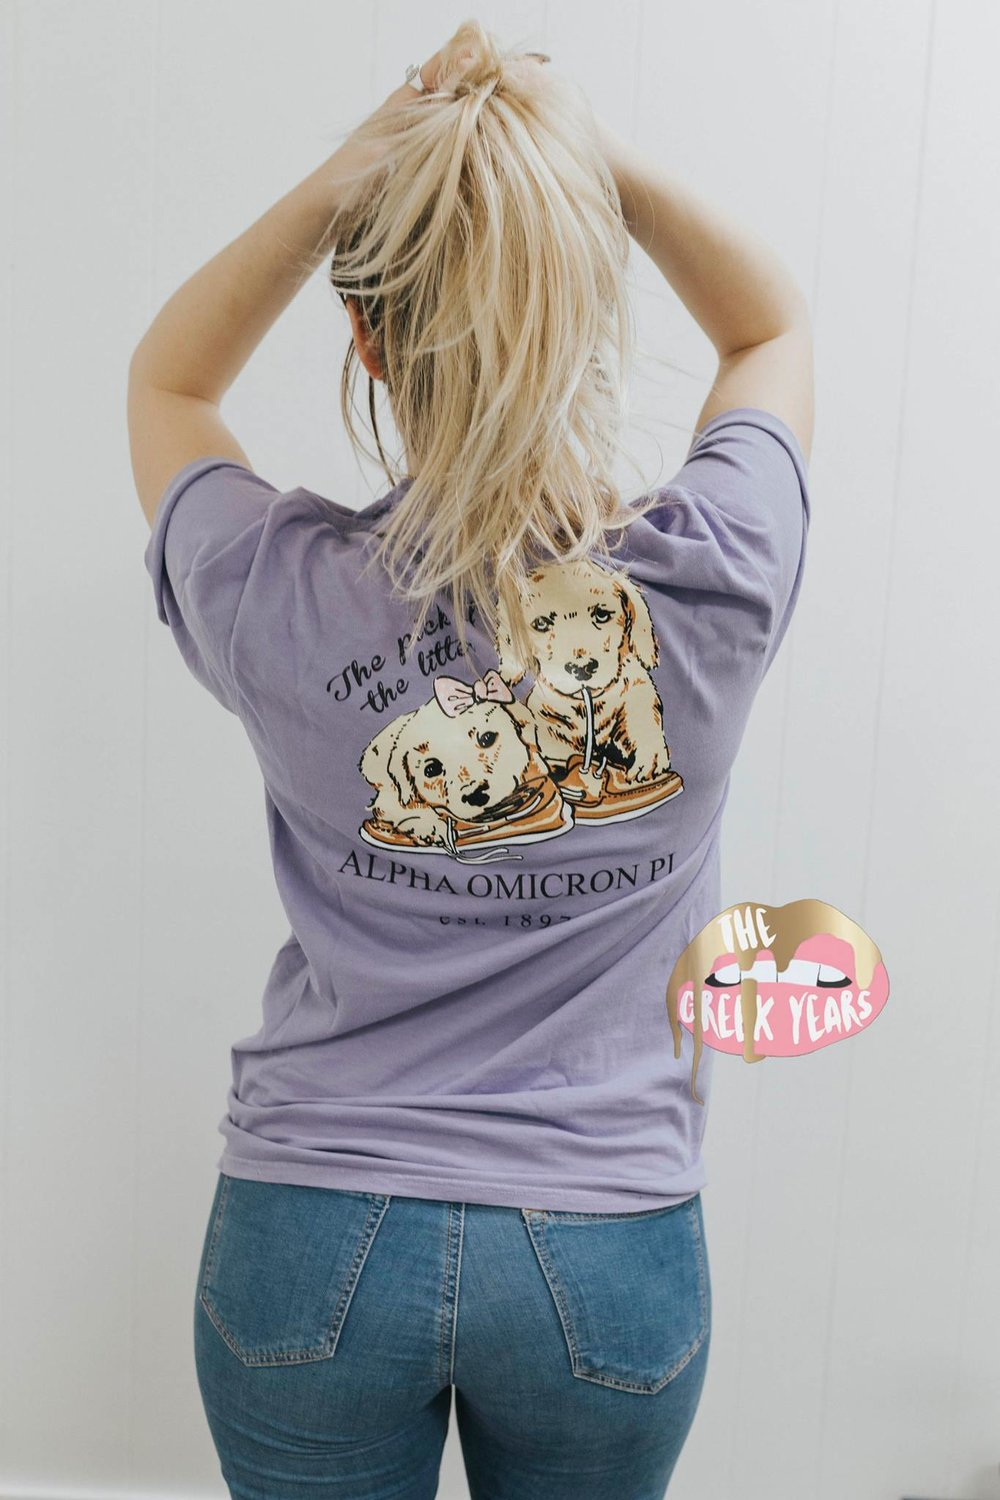 Alpha Omicron Pi Puppy TShirt Image property of Cady Boughtin Photography. Shirt designed by me for The Greek Years.